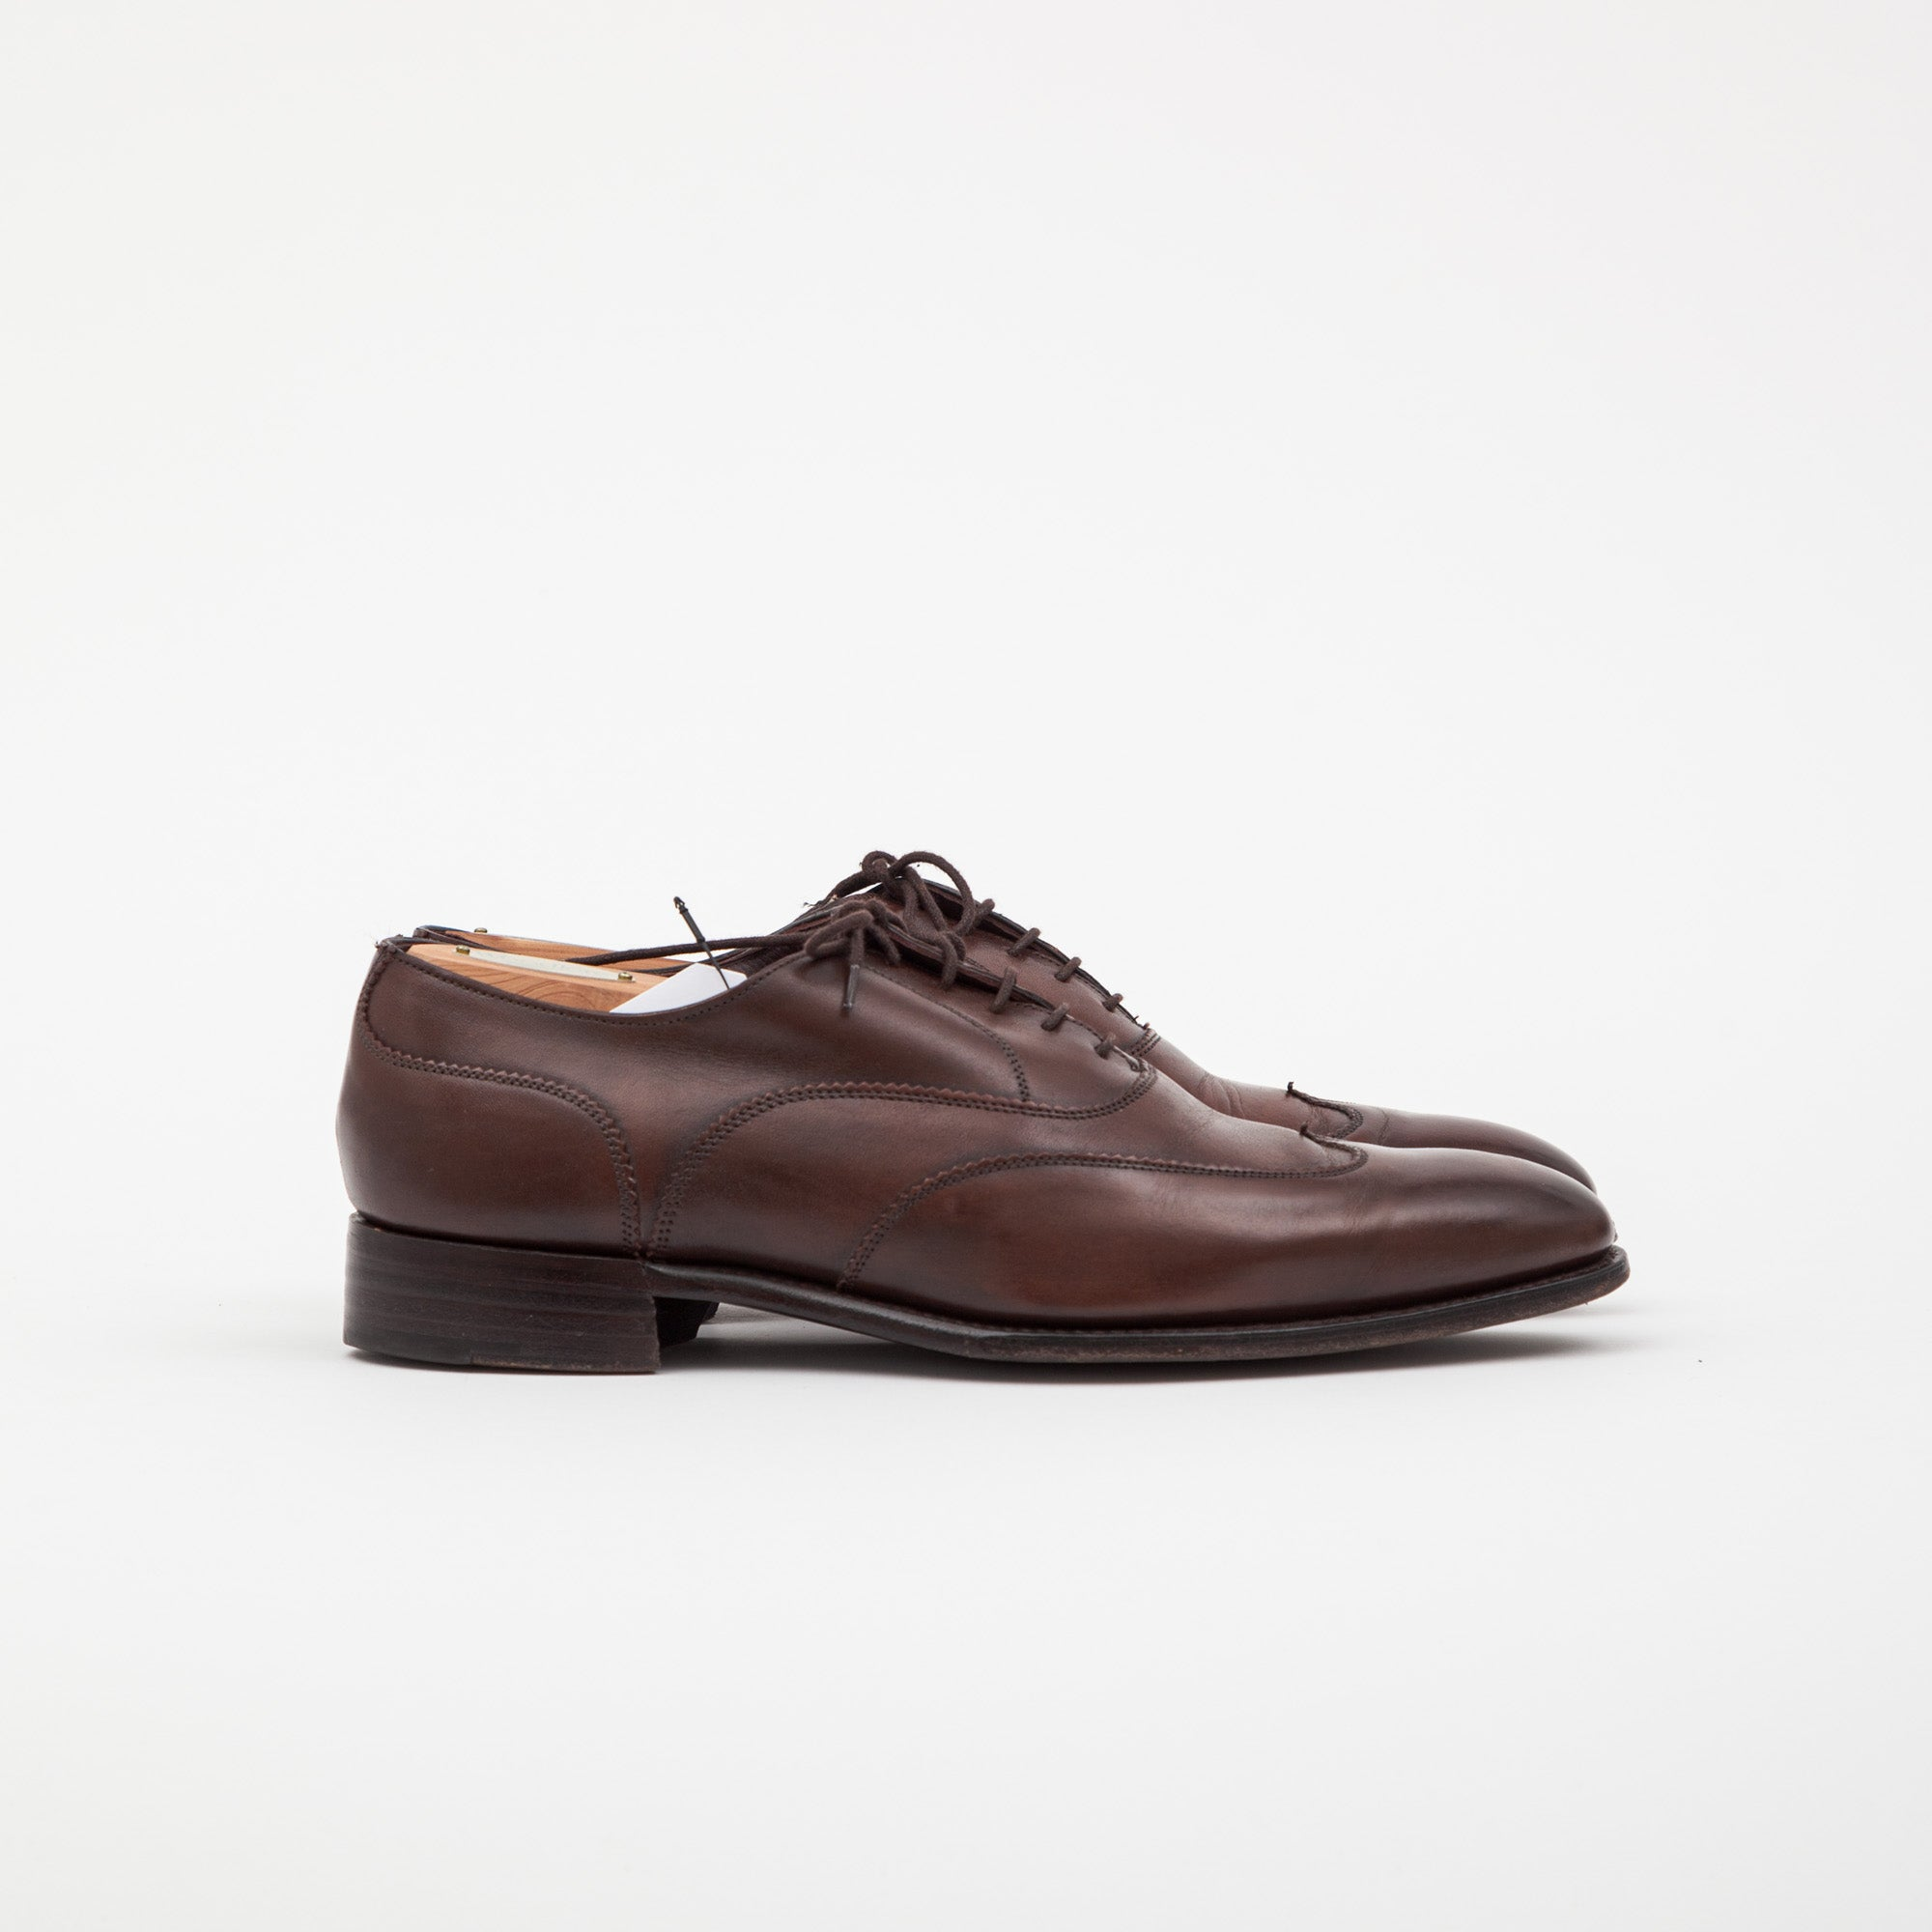 Joseph Cheaney & Sons Calf Leather Balmoral Shoe